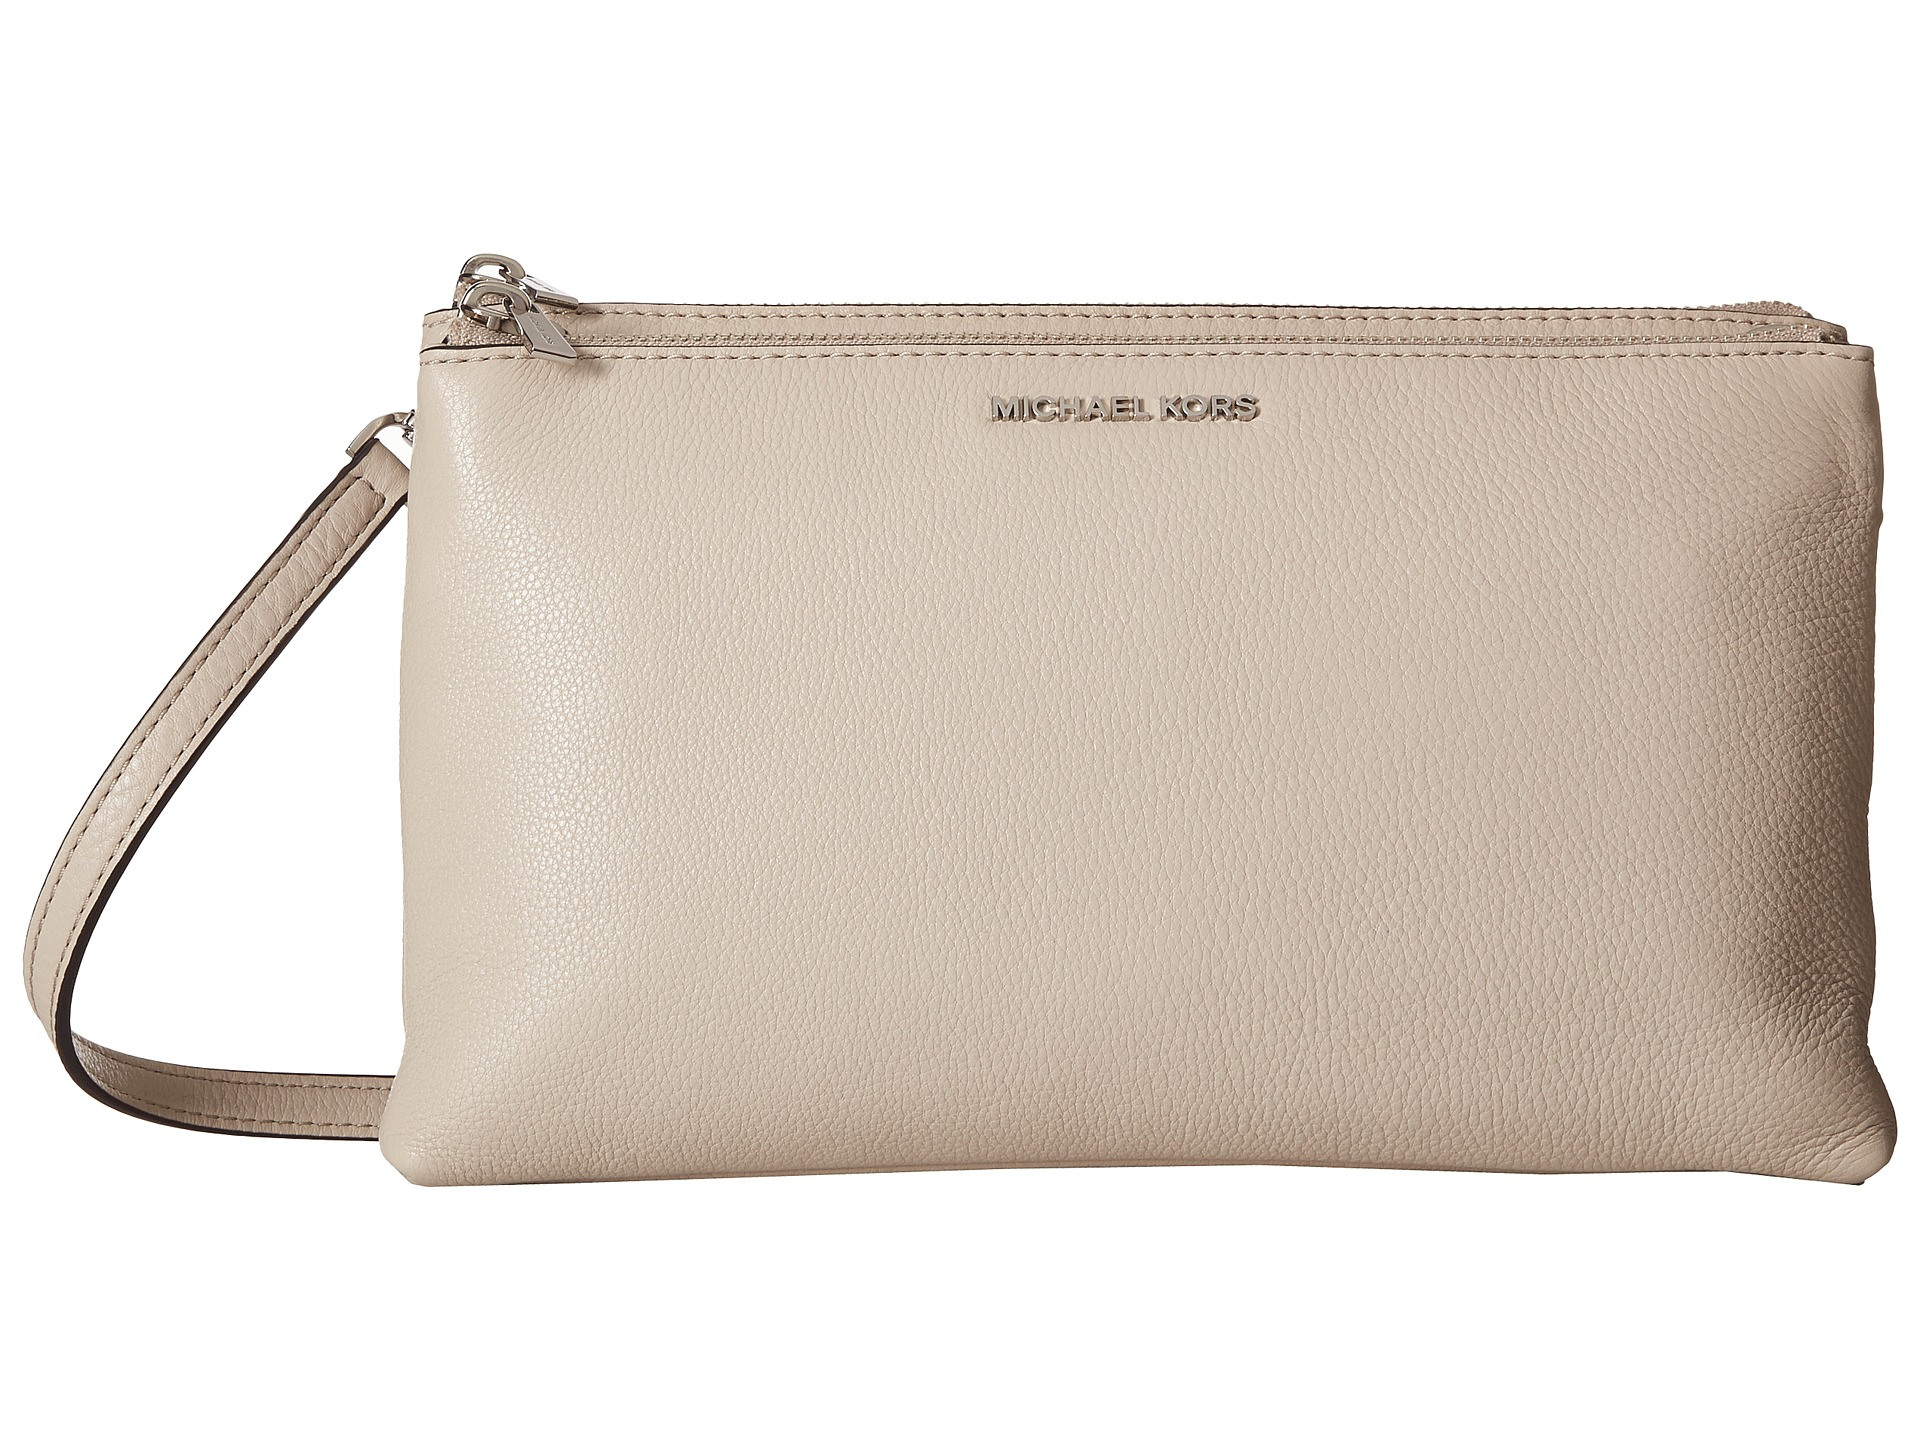 Michael Kors Crossbody Laukut : Michael kors adele double zip crossbody at zappos